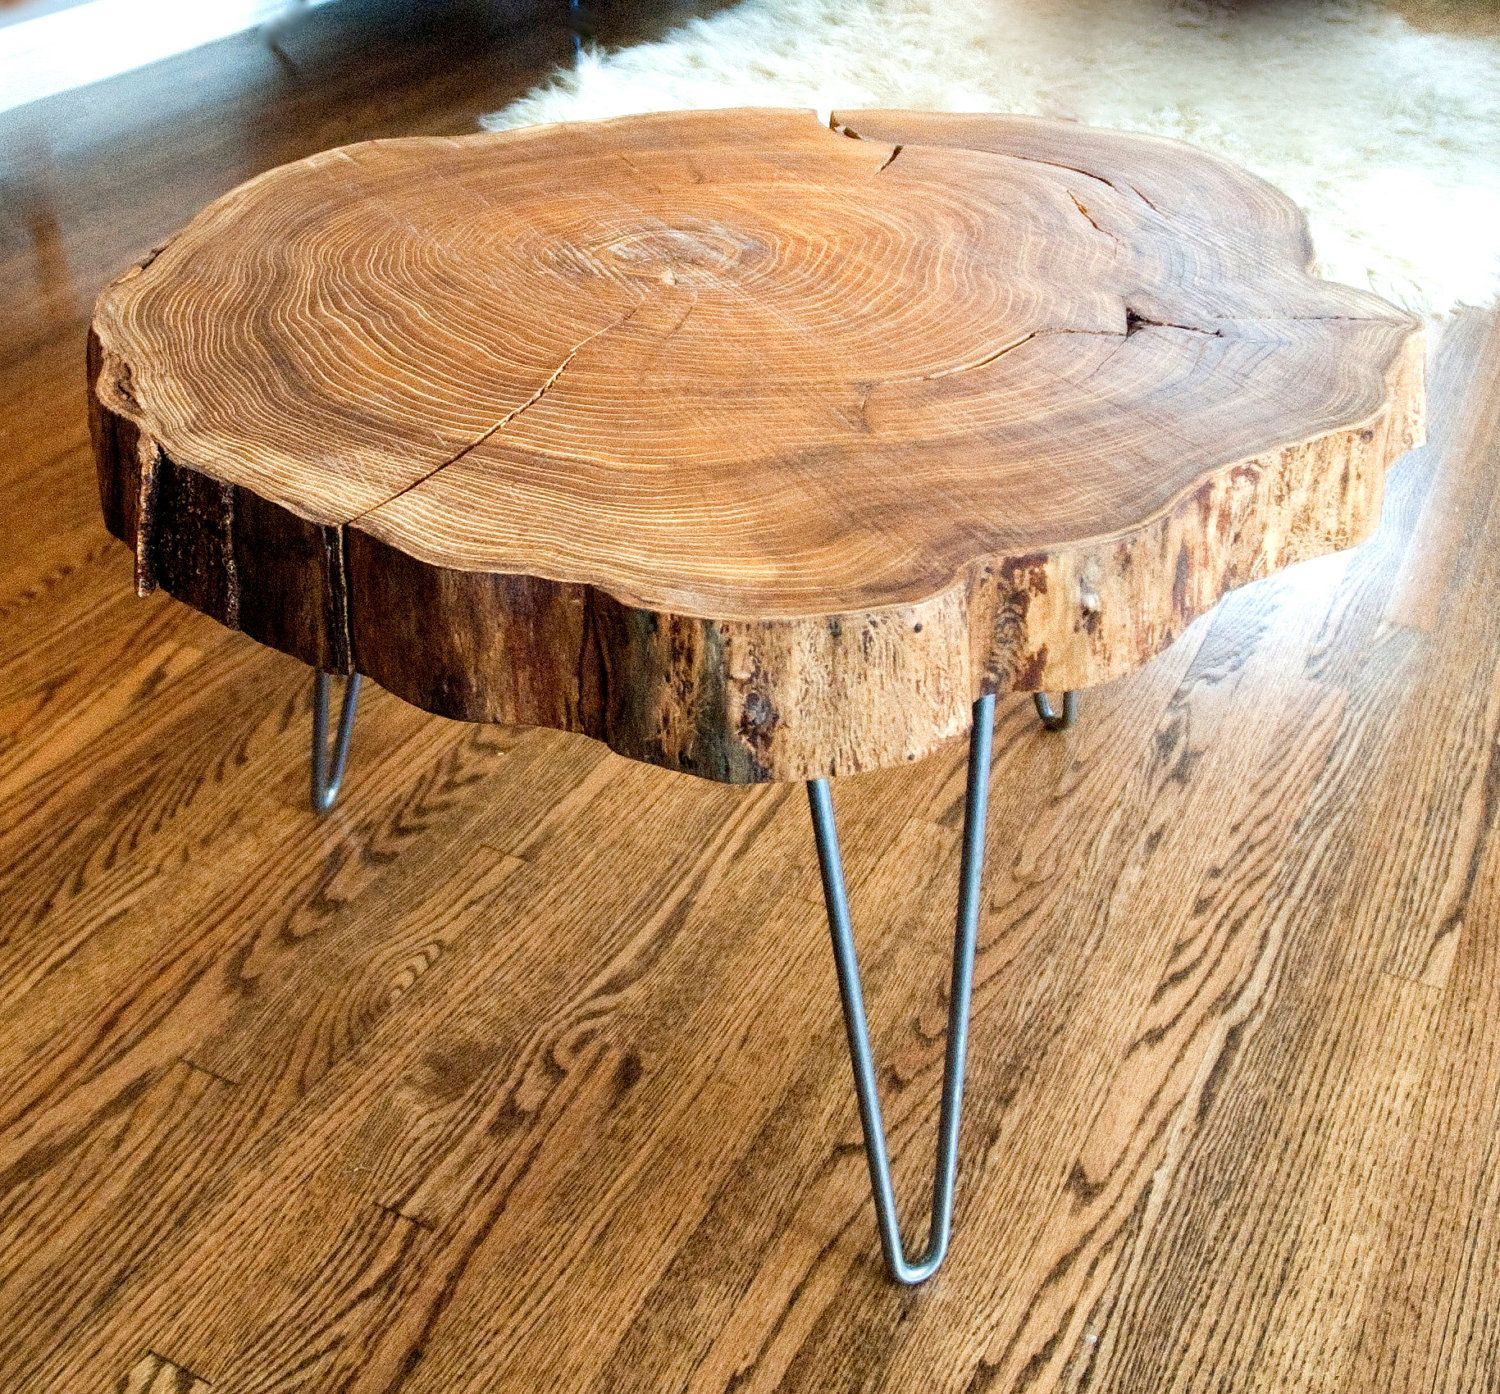 Natural Live-Edge Round Slab Side Table/Coffee Table by Norsk Valley  Workshop eclectic-coffee-tables